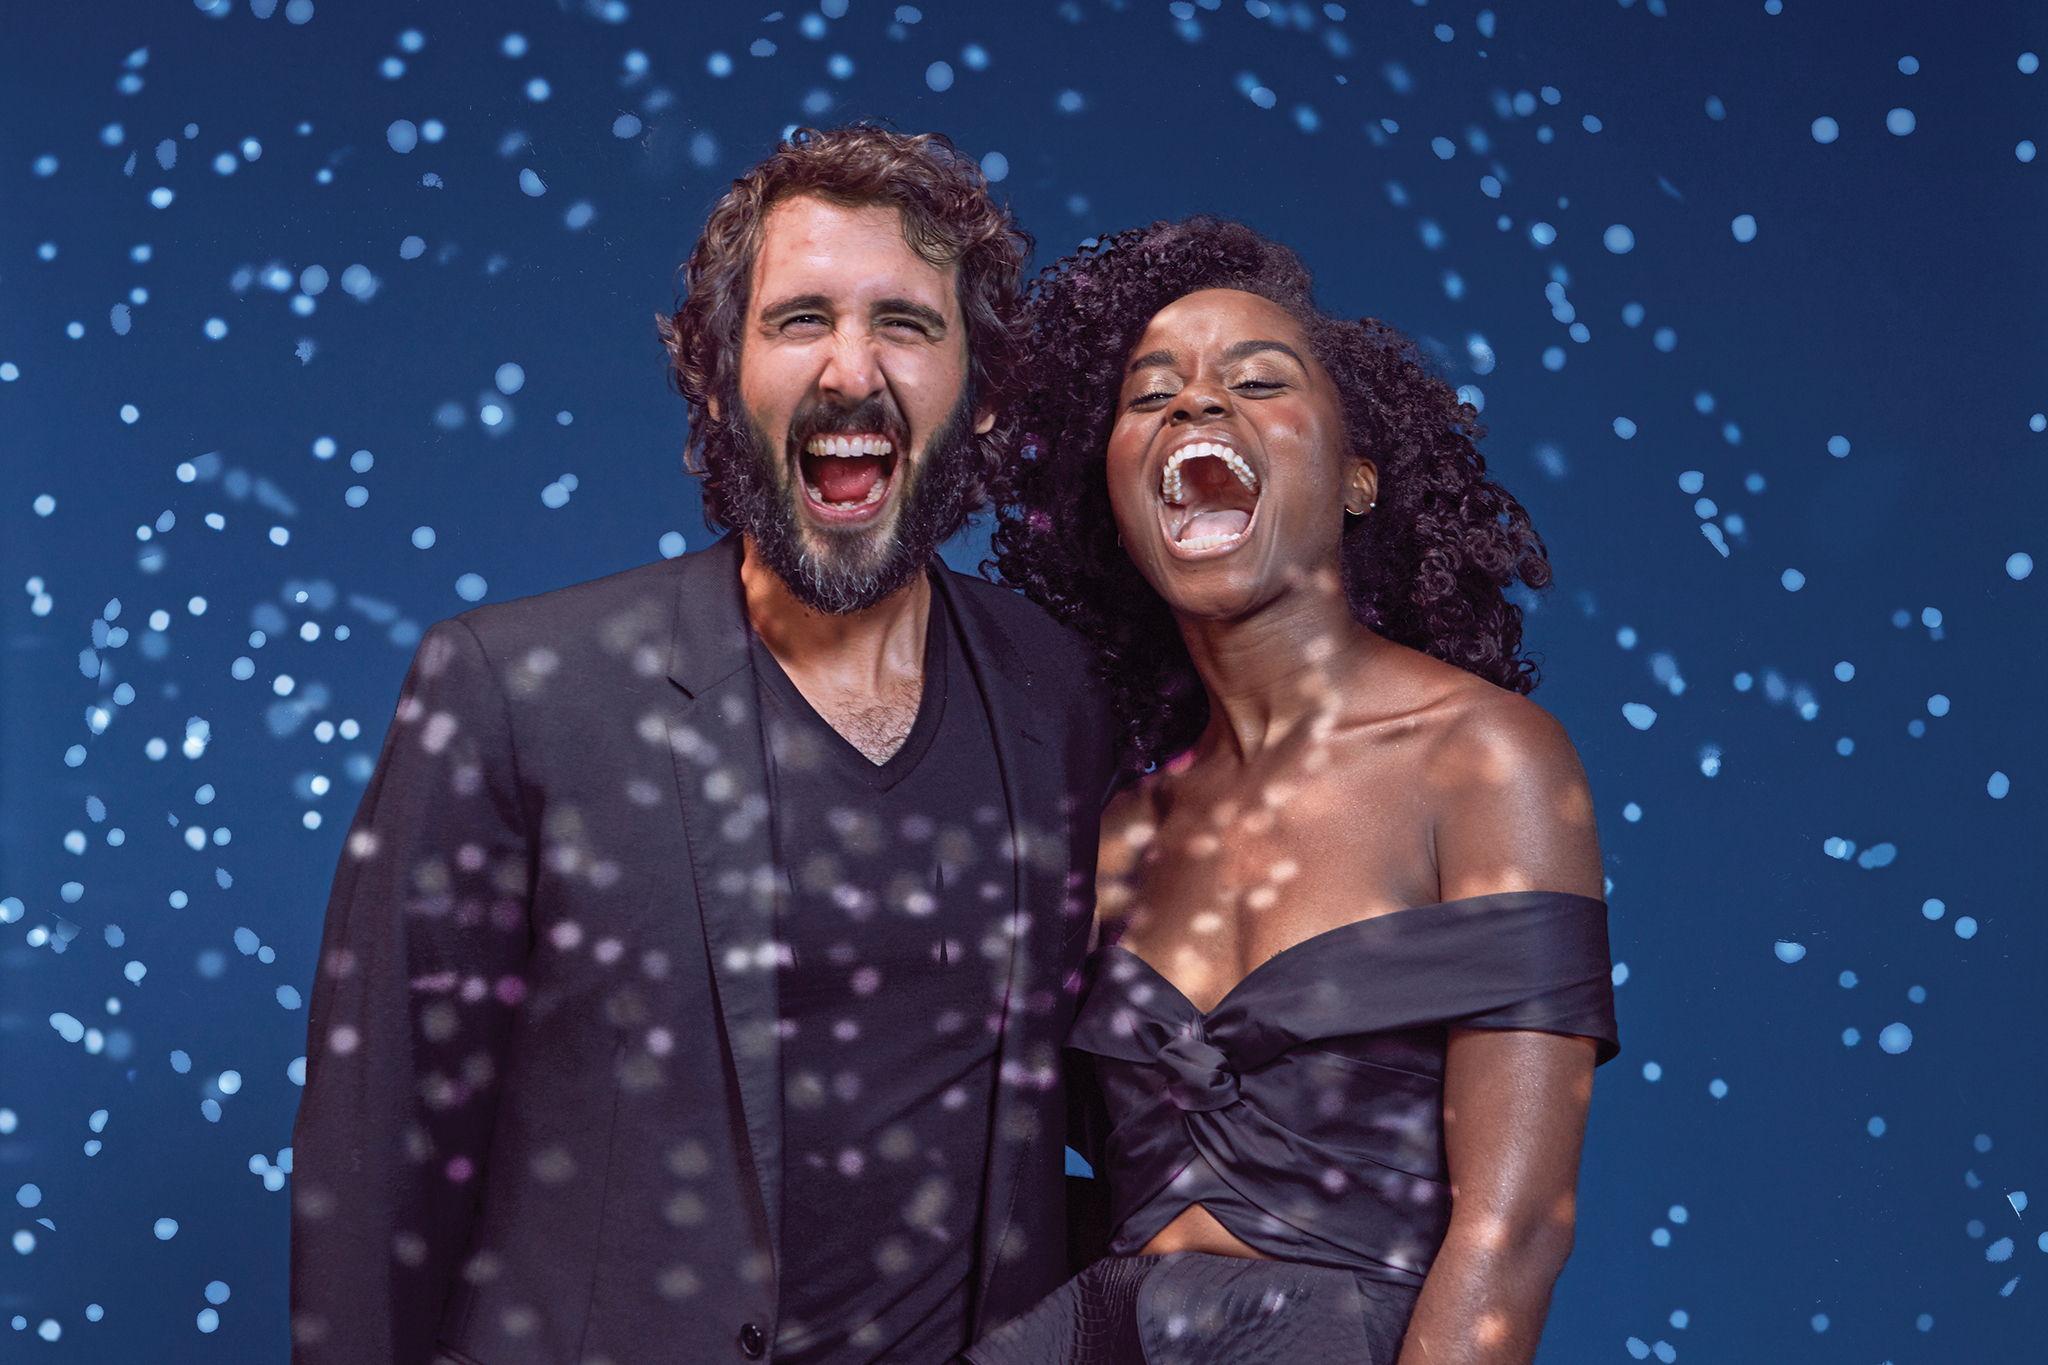 Josh Groban and Denée Benton are Broadway bound